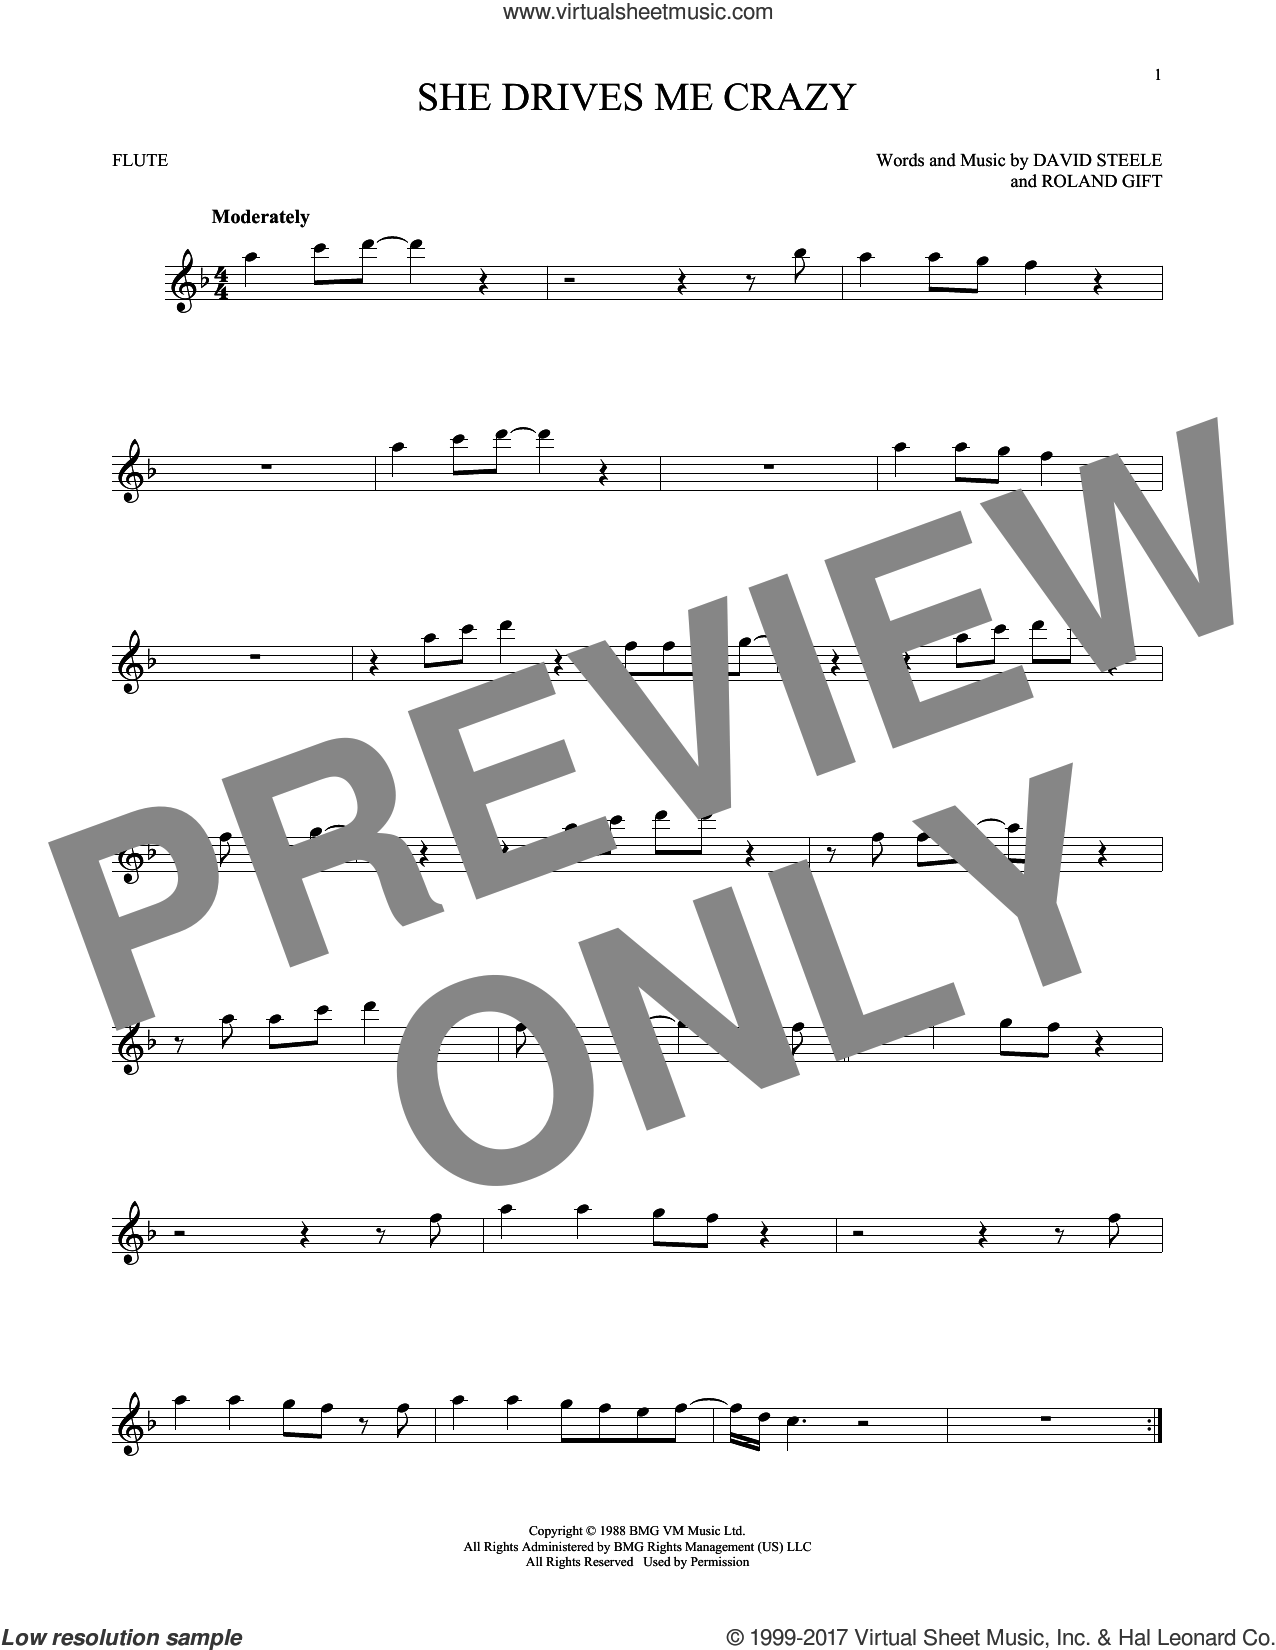 She Drives Me Crazy sheet music for flute solo by Fine Young Cannibals, David Steele and Roland Gift, intermediate skill level